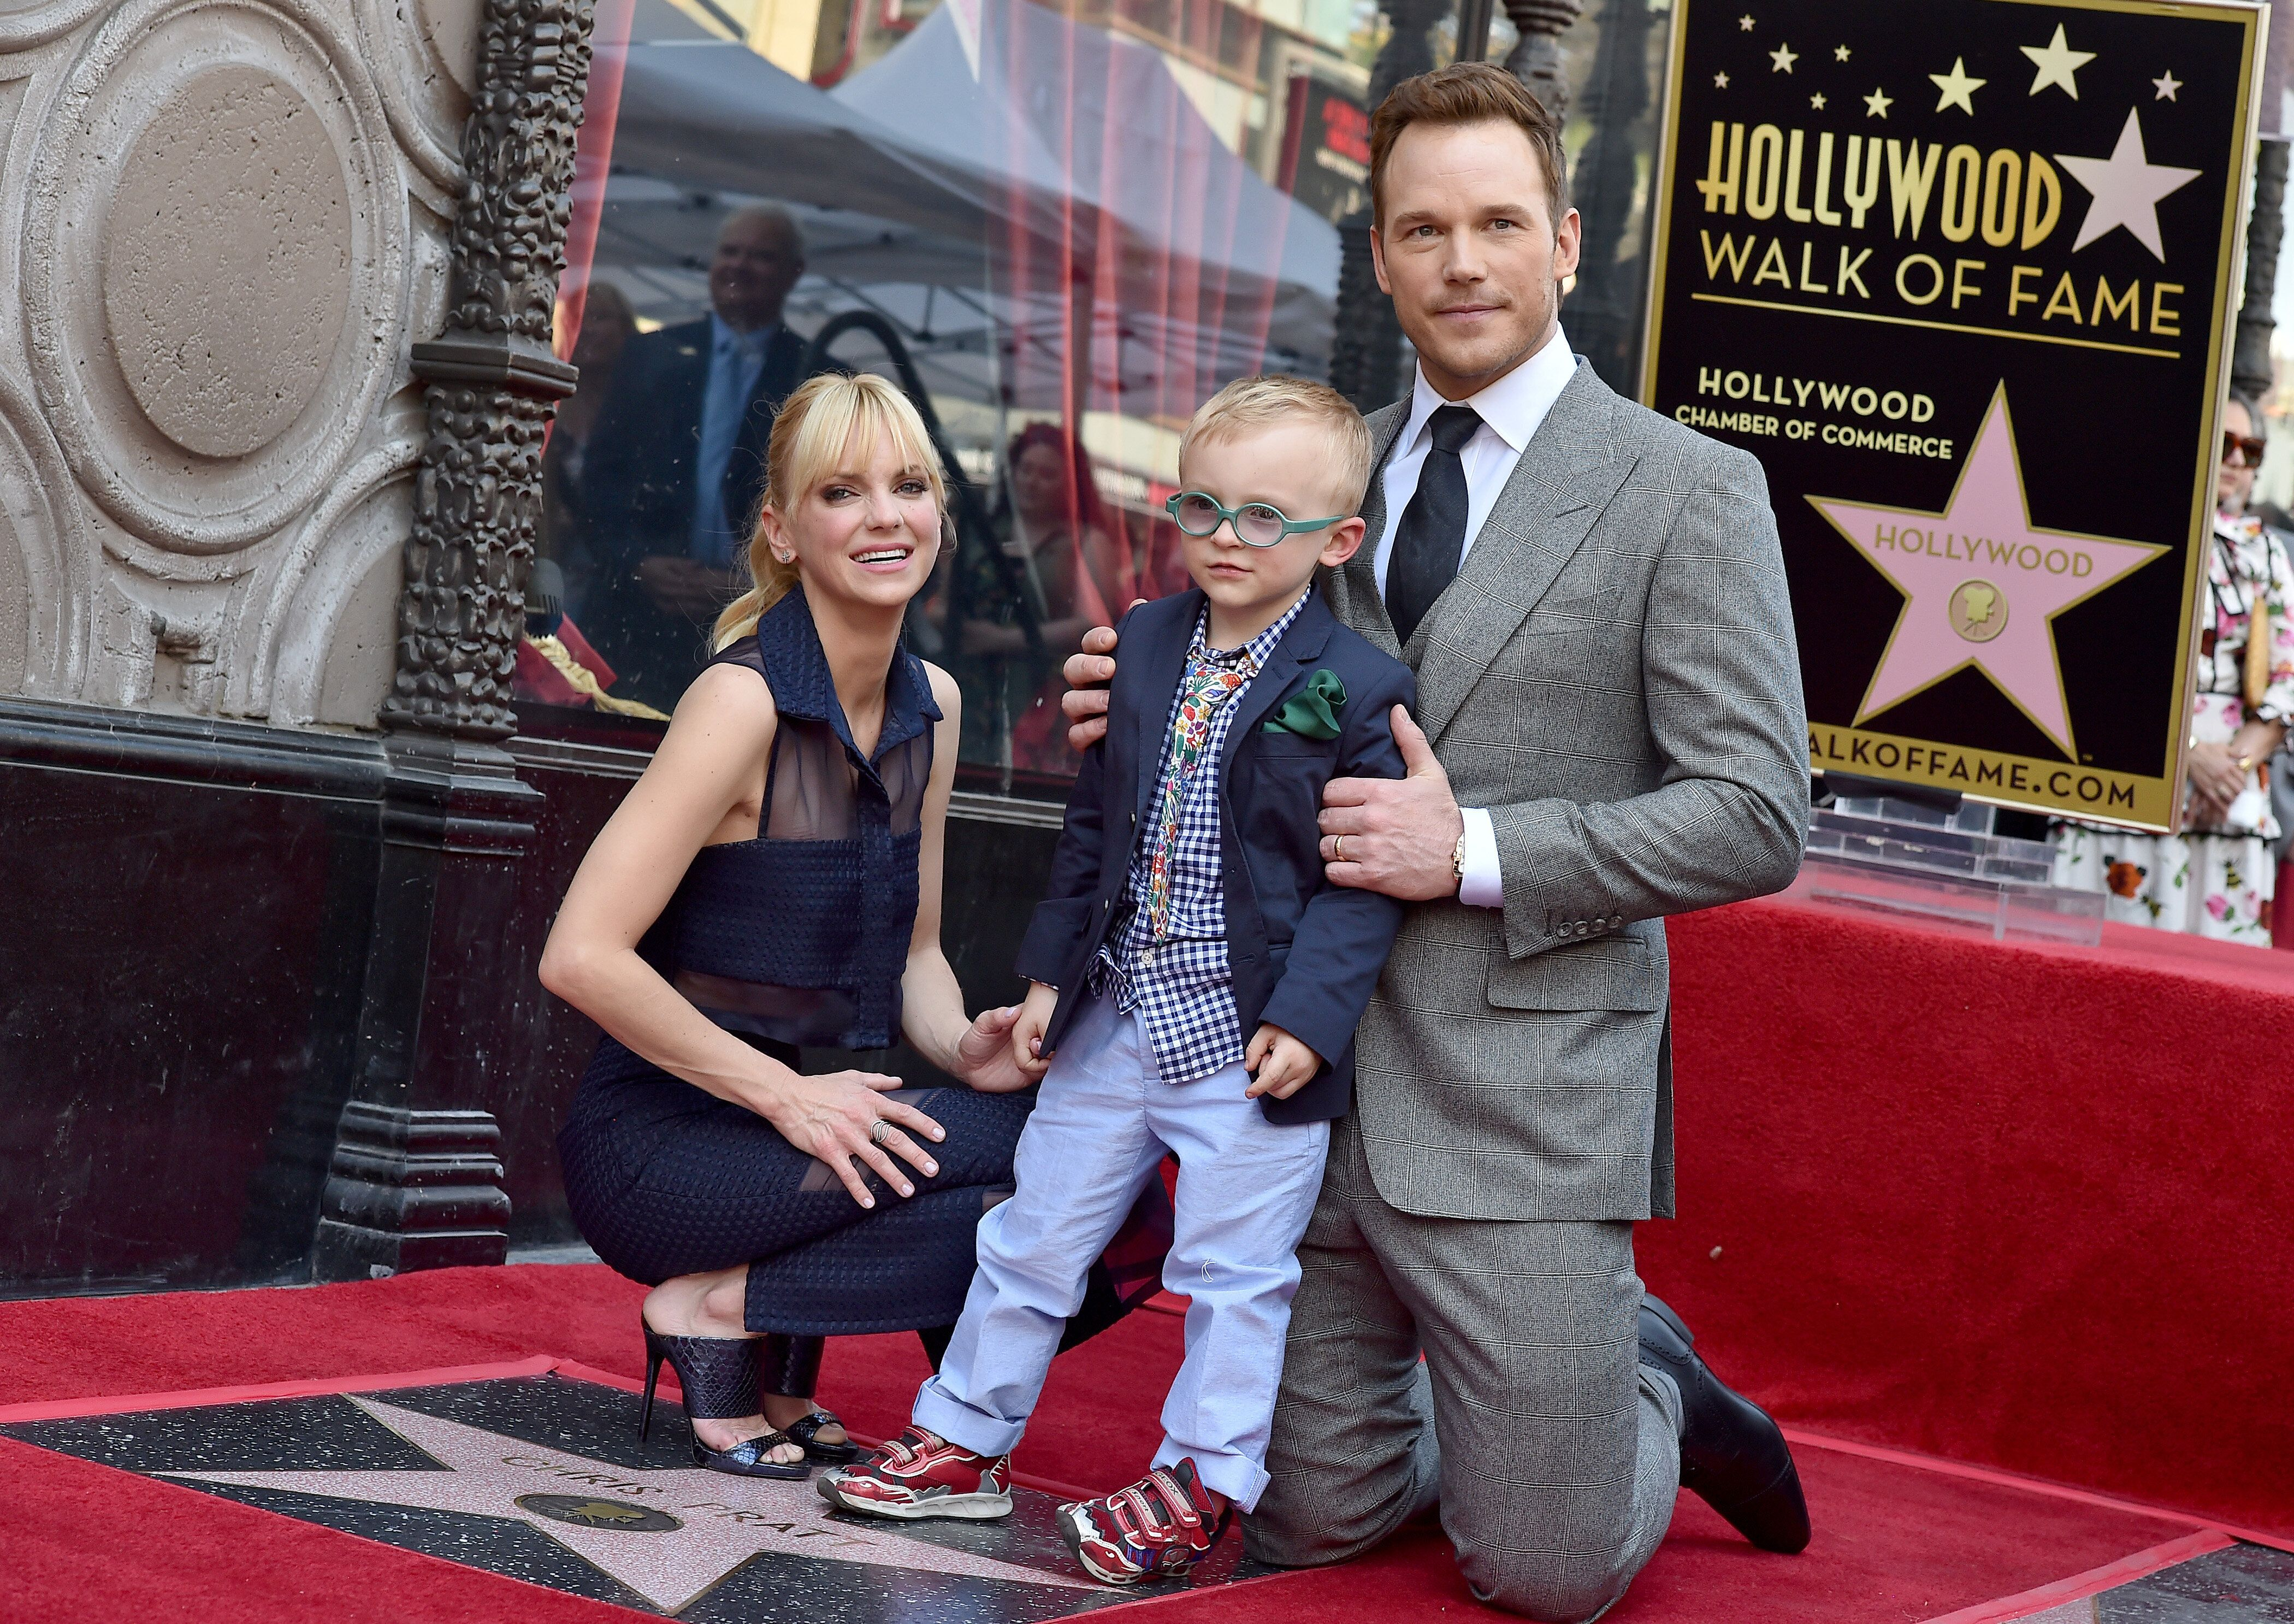 HOLLYWOOD, CA - APRIL 21:  Actor Chris Pratt, wife Anna Faris and son Jack Pratt attend the ceremony honoring Chris Pratt with a star on the Hollywood Walk of Fame on April 21, 2017 in Hollywood, California.  (Photo by Axelle/Bauer-Griffin/FilmMagic)